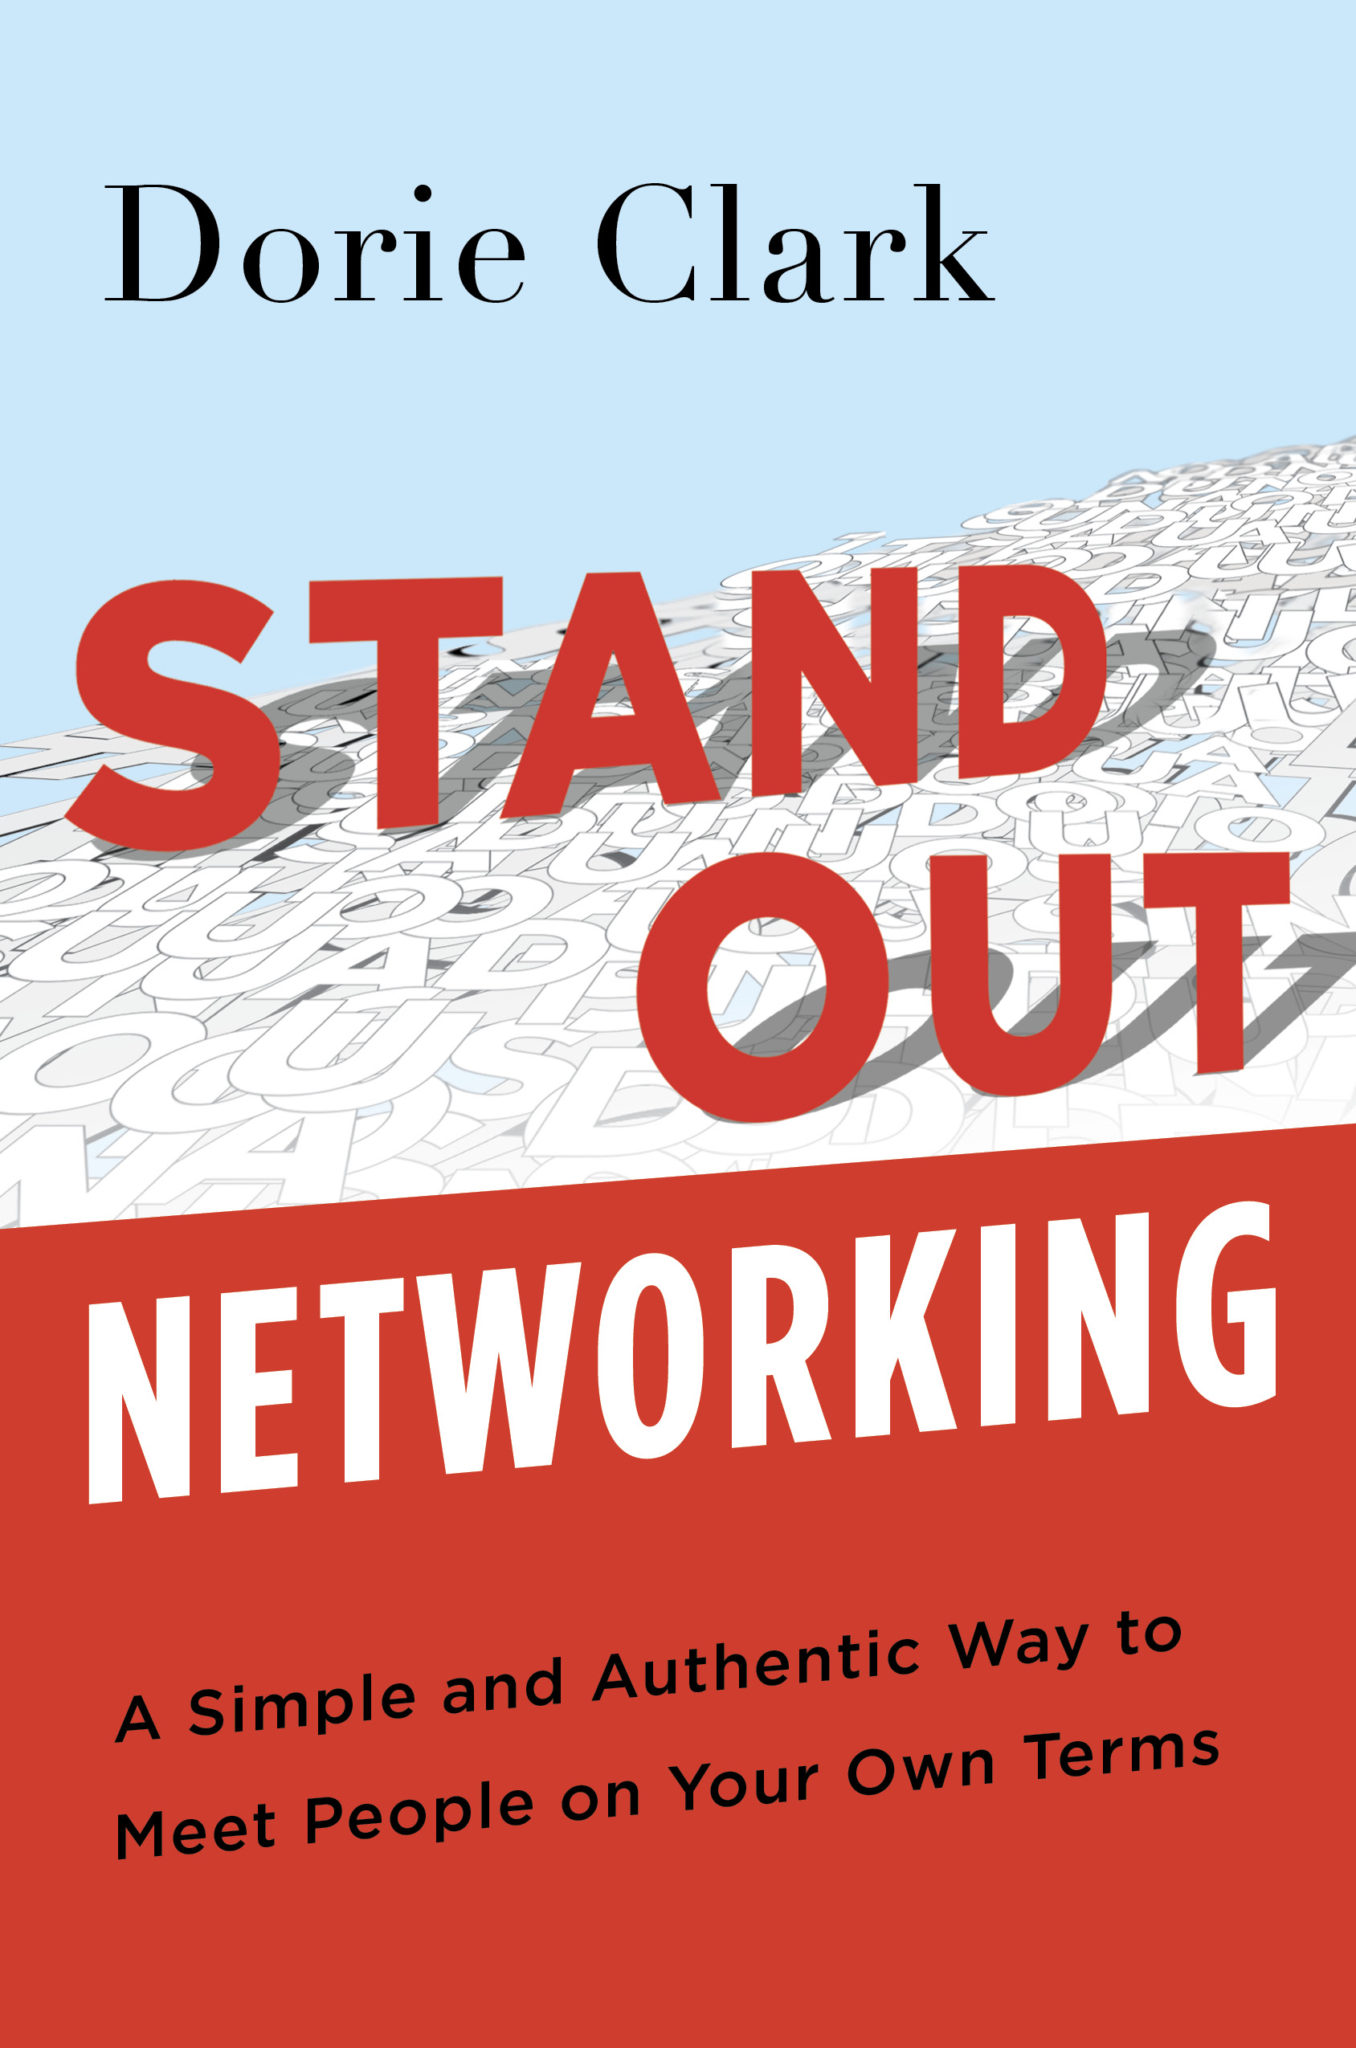 STAND OUT NETWORKING: A Simple and Authentic Way to Meet People on Your Own Terms.